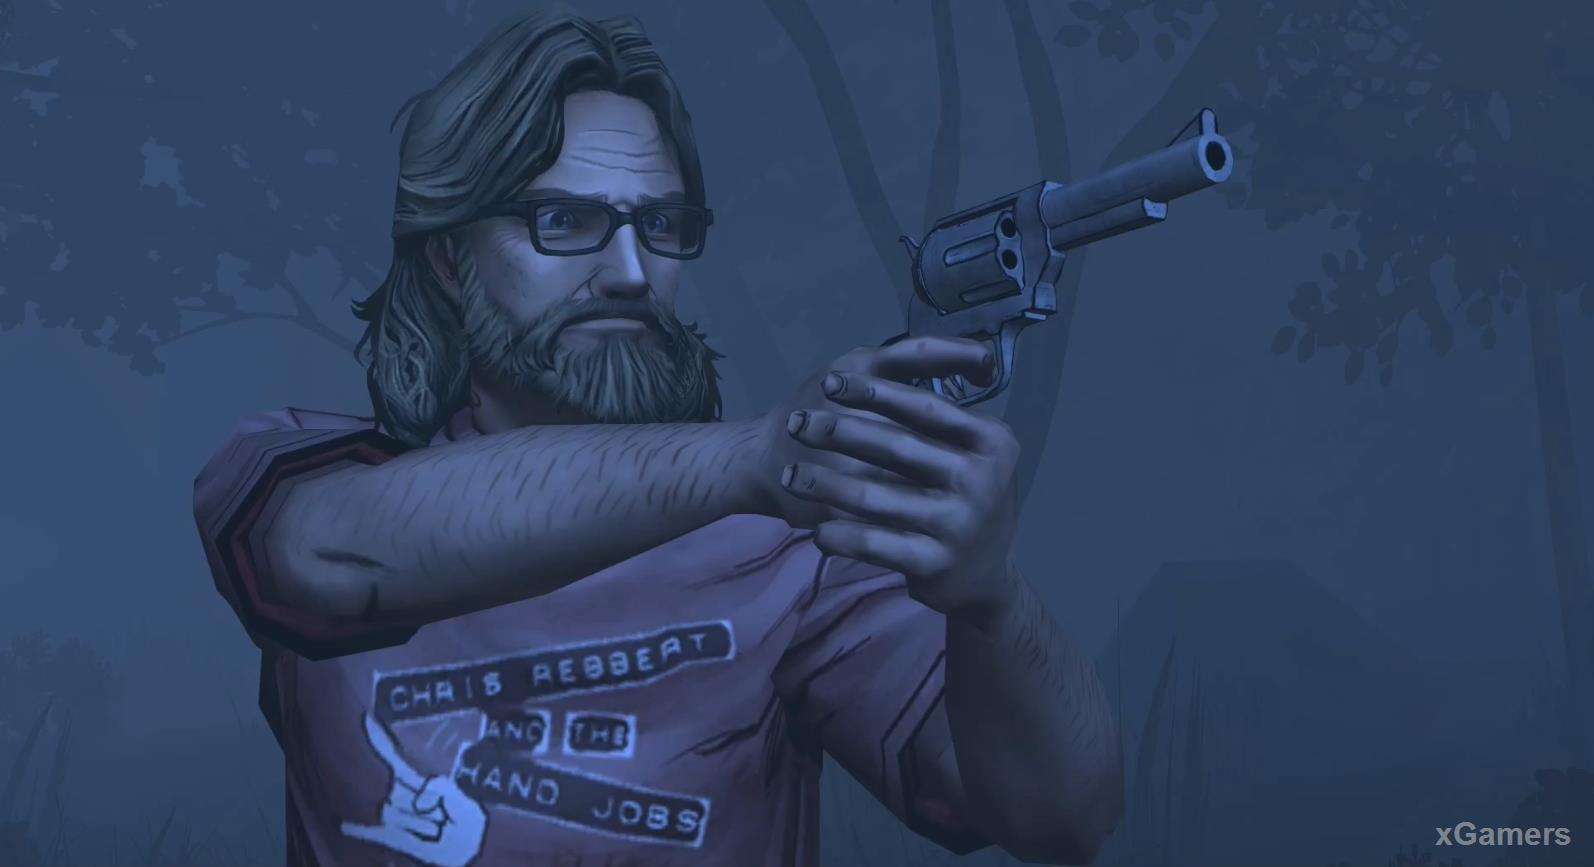 Wyatt - The Walking Dead: Game Characters